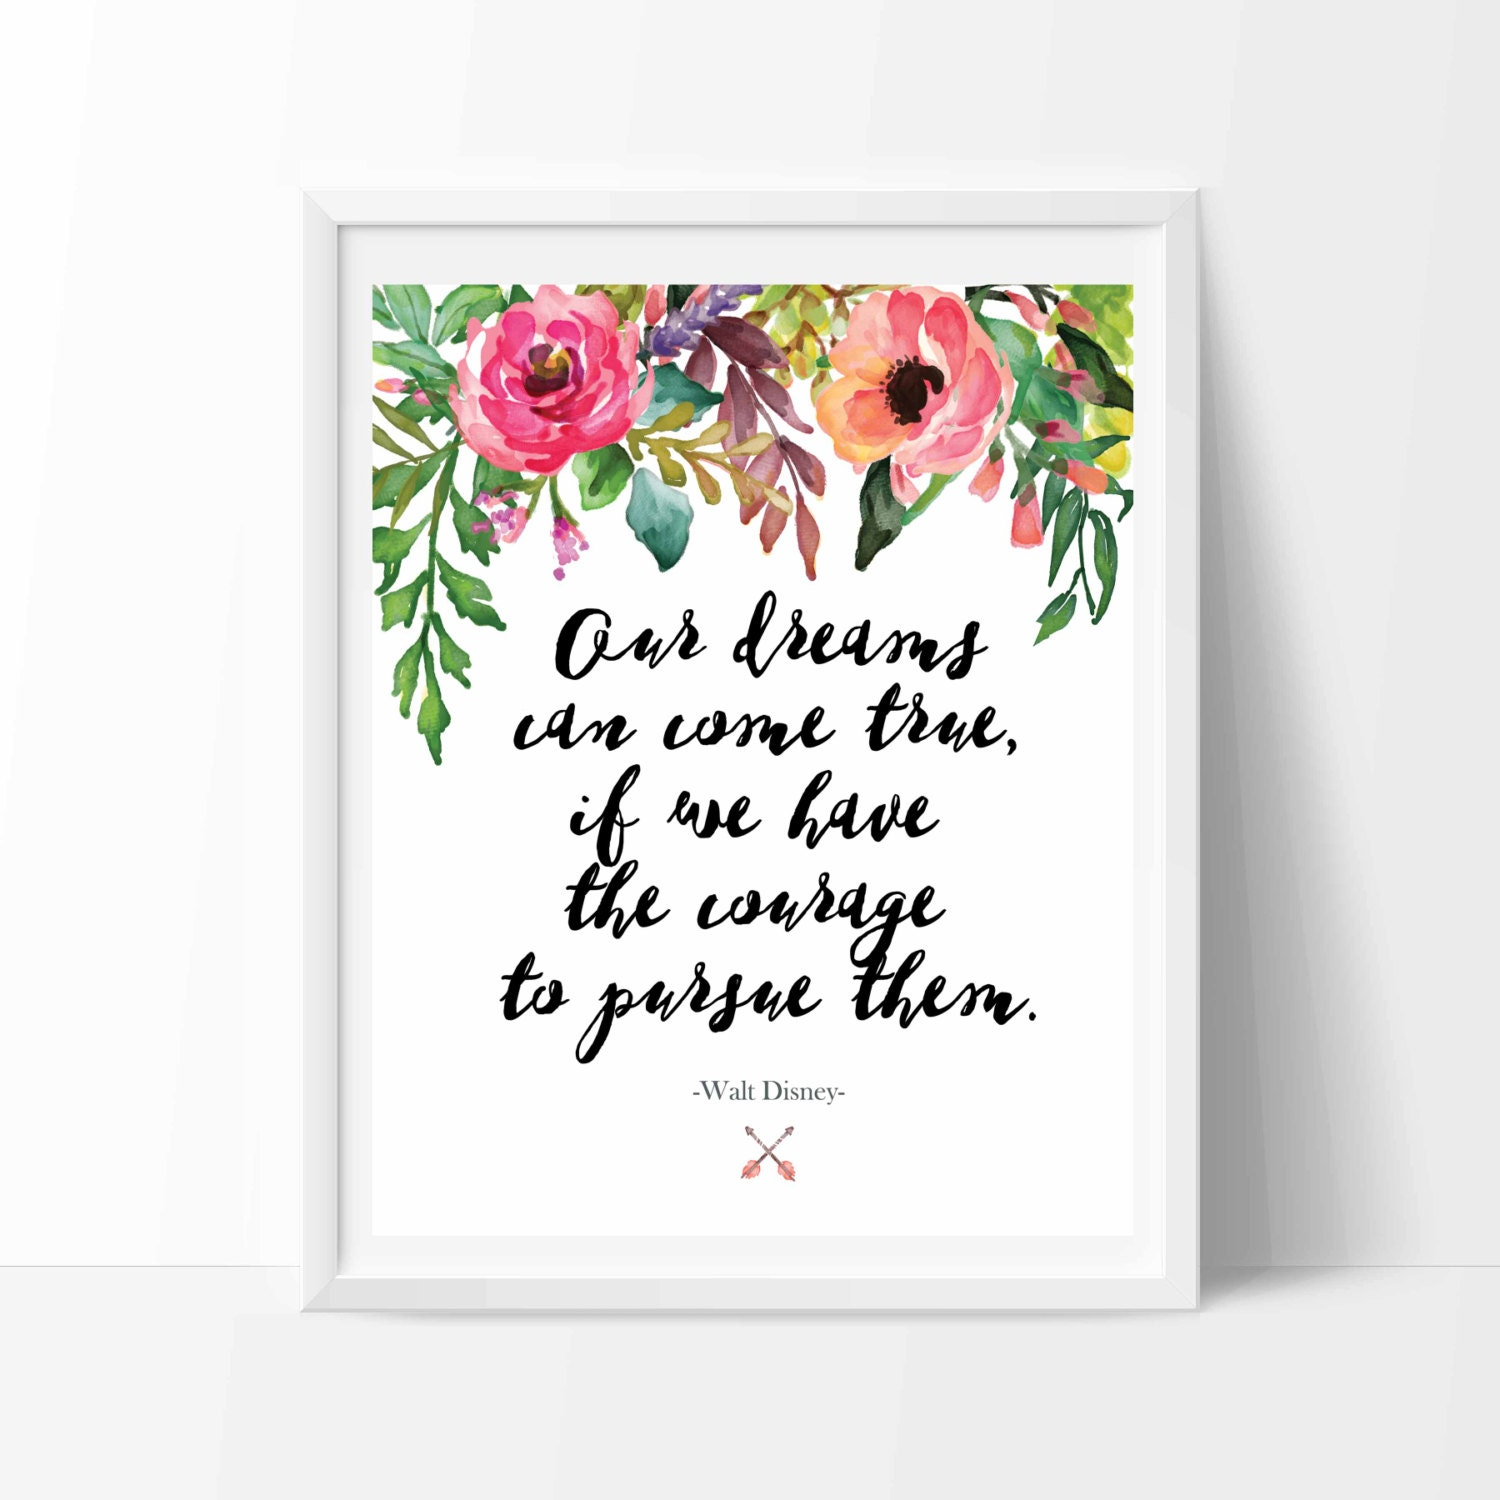 Wall Art Quotes Disney : Disney quote print printable wall art decor